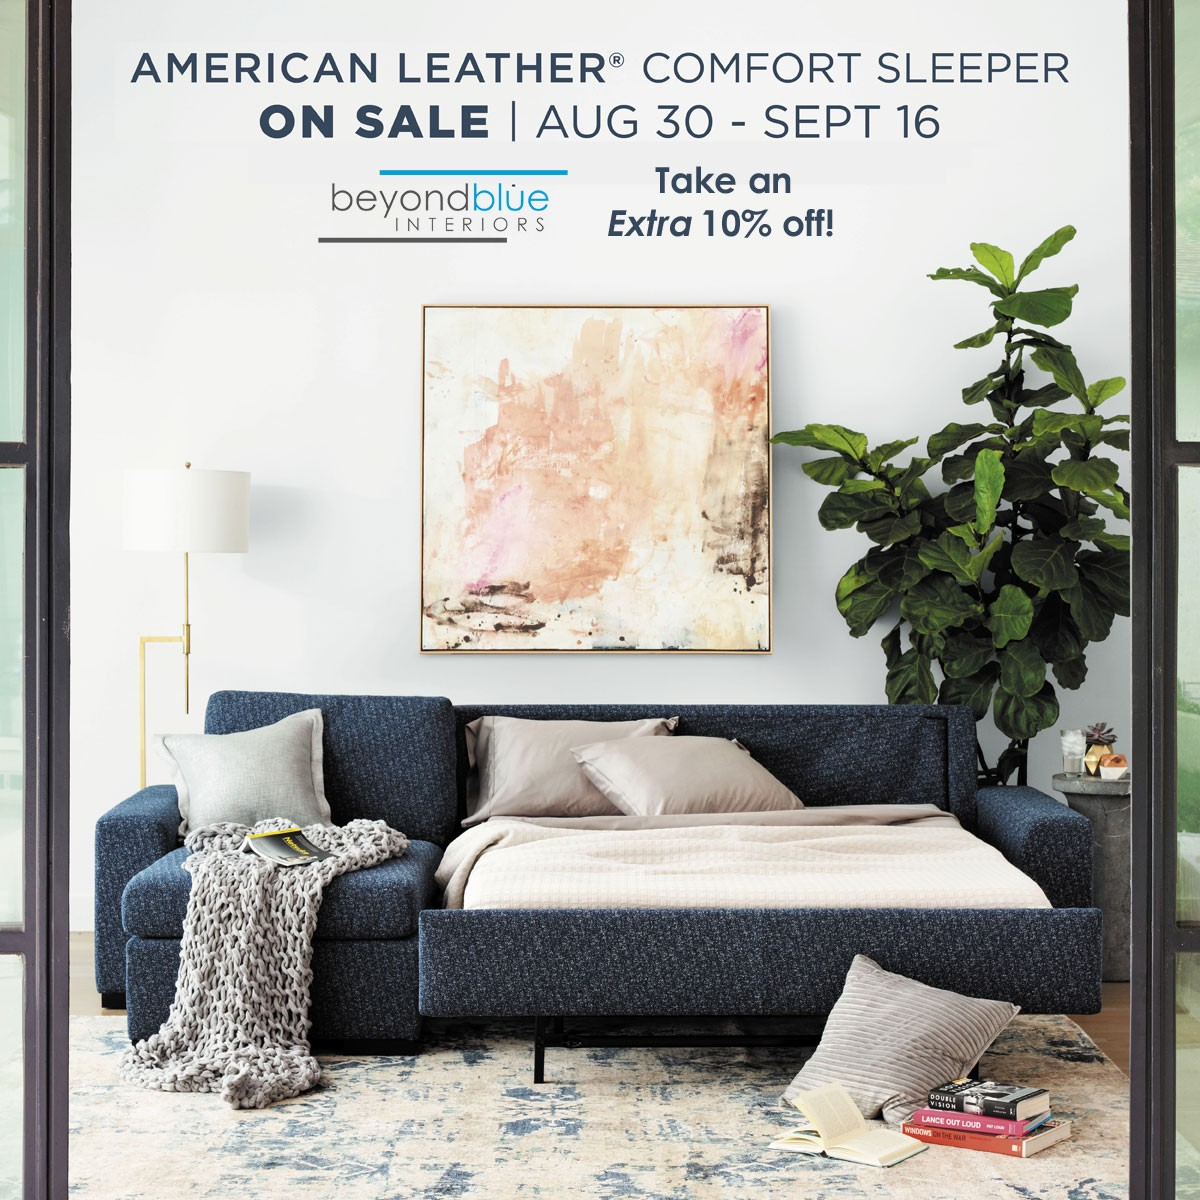 American Leather Sleeper Sale Fall 2019